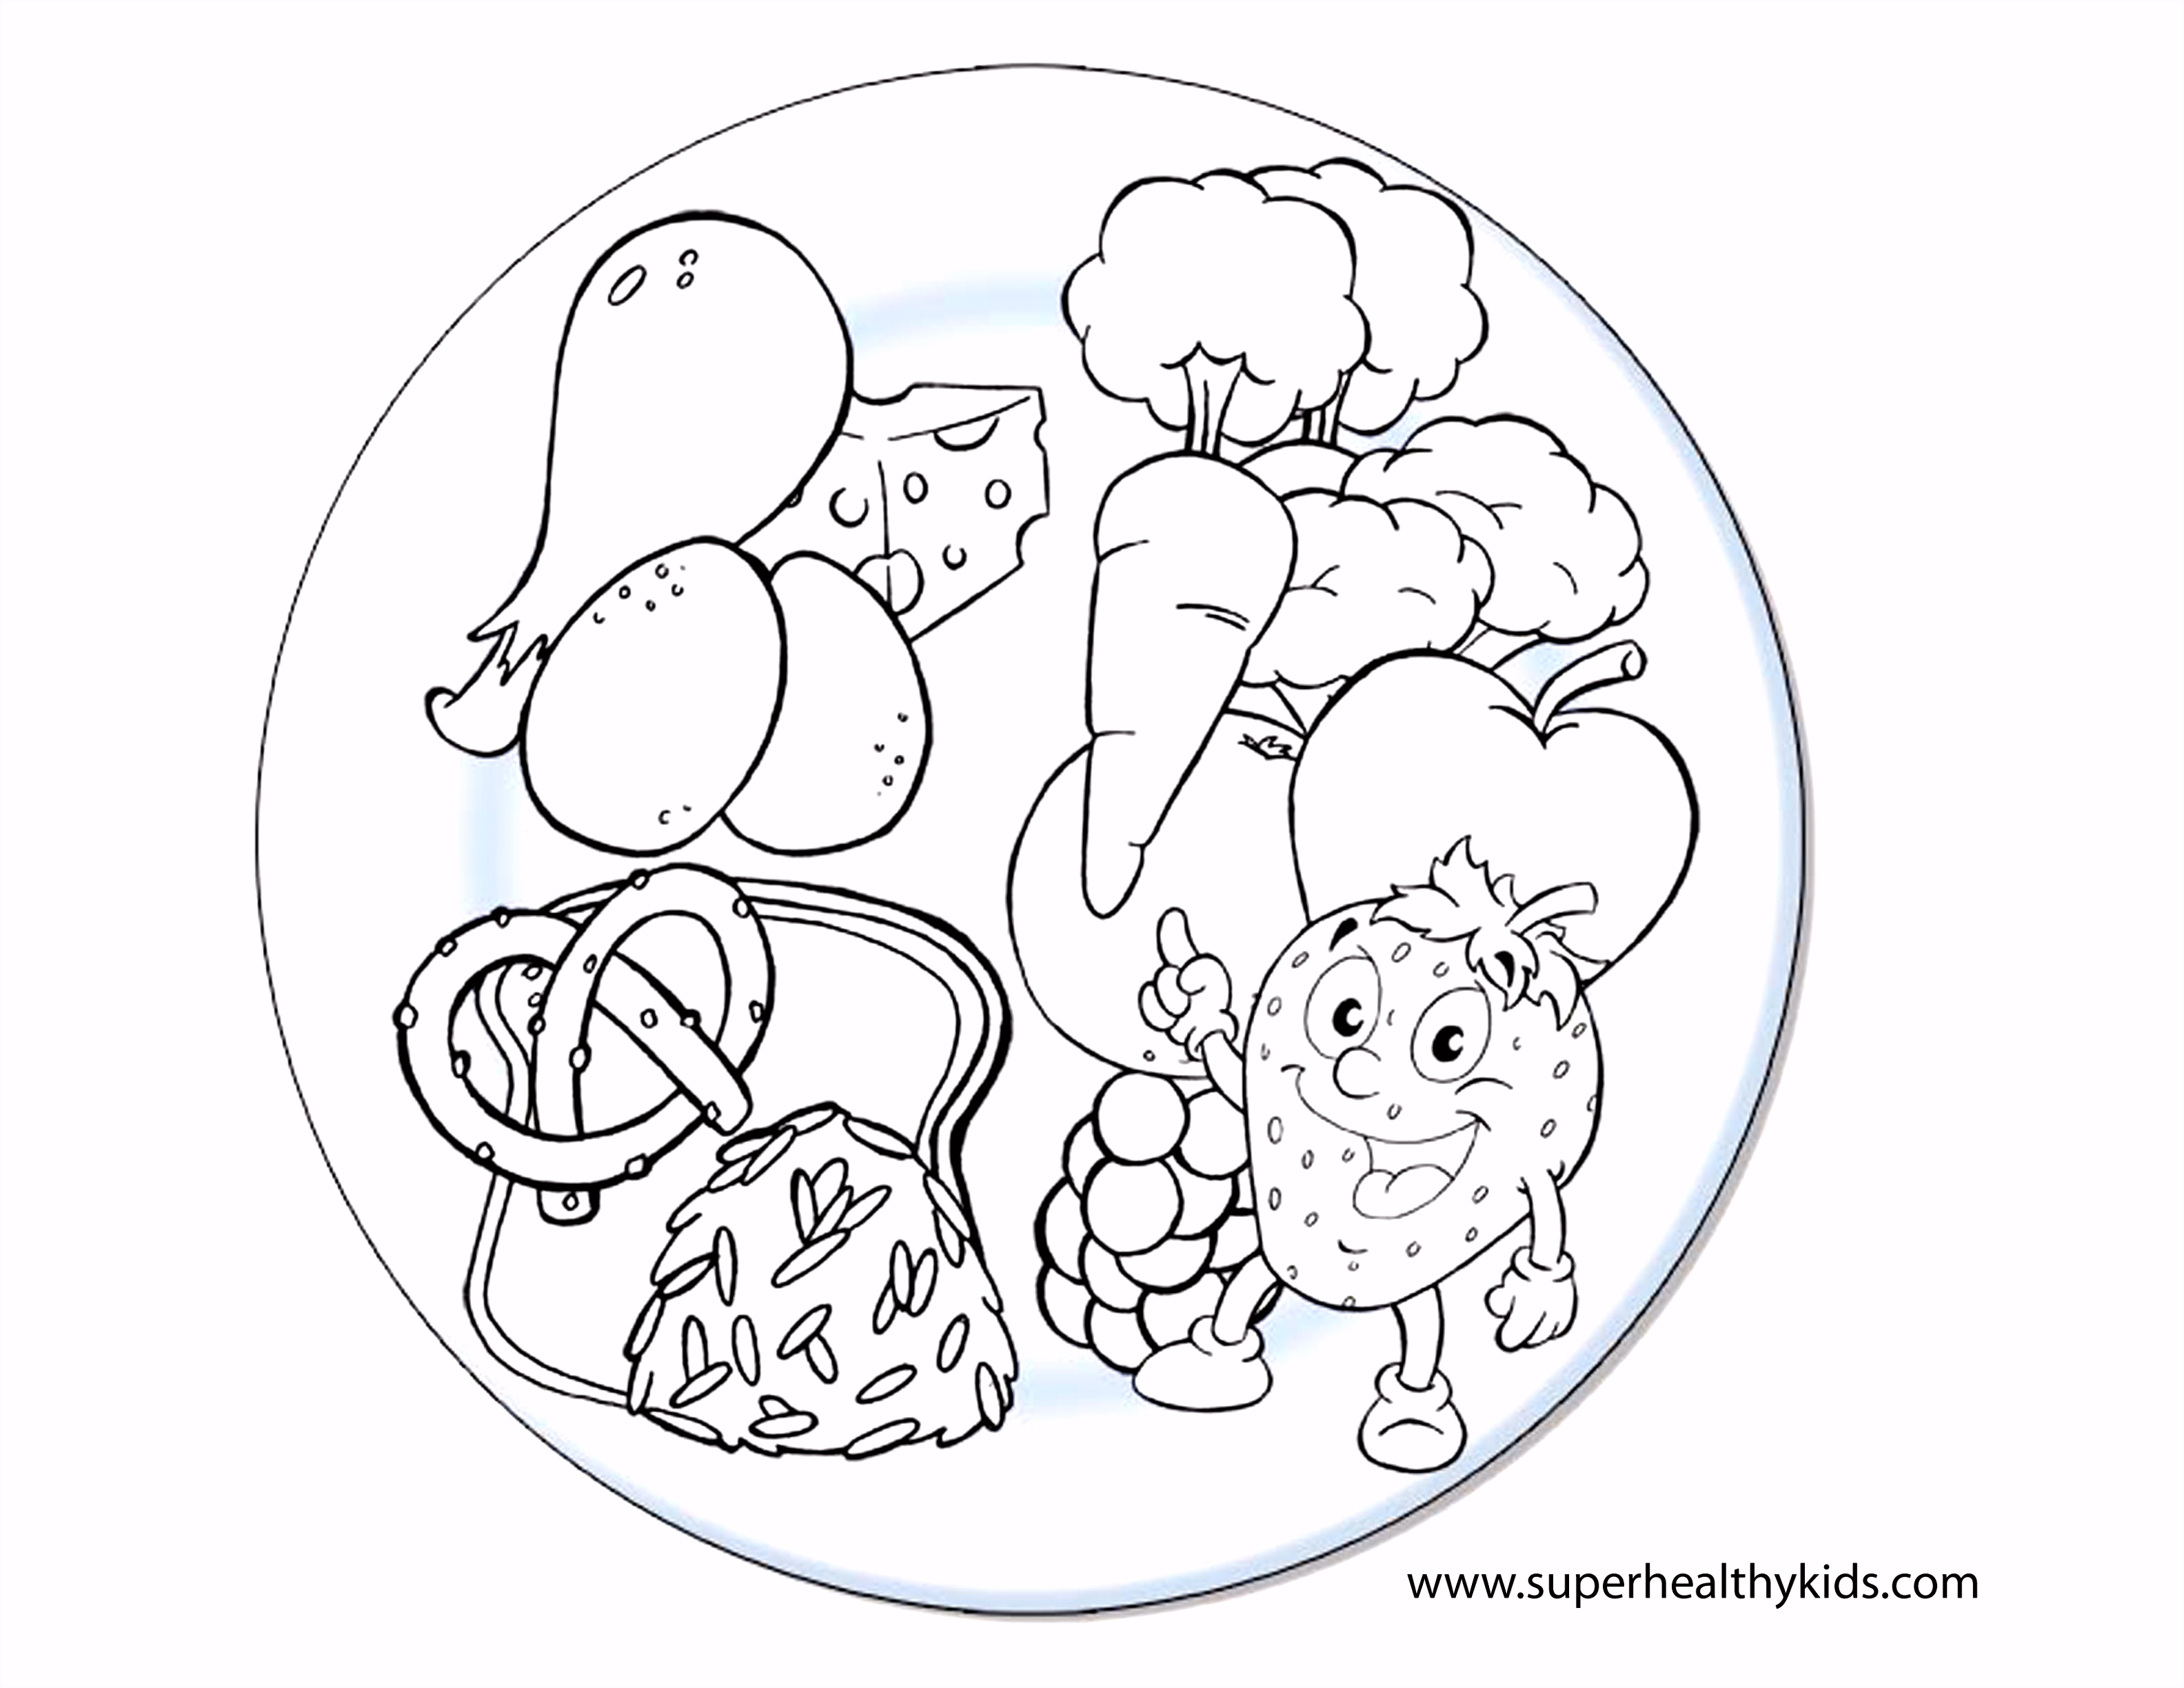 健康 Coloring Pages